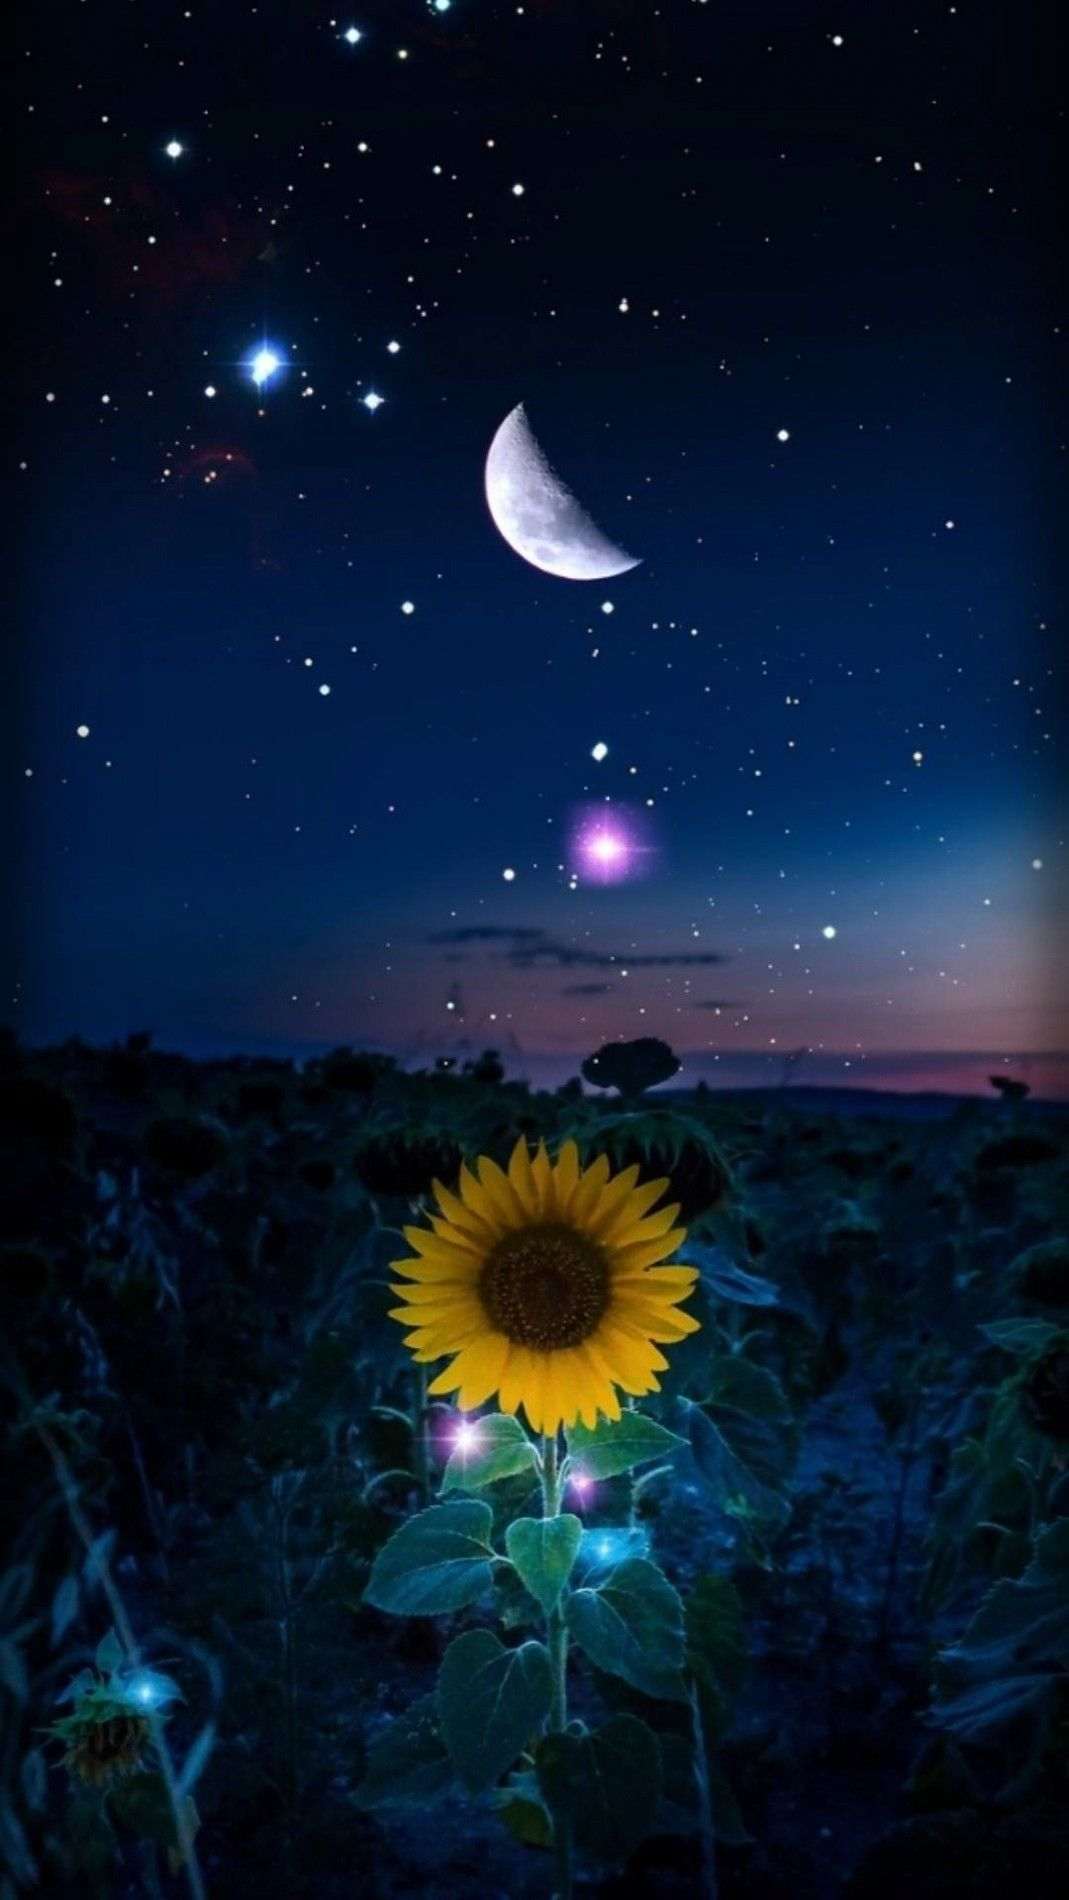 Best Nature Phone Wallpaper With High Quality Starry Night Wallpaper Sunflower Wallpaper Sunflower Photography